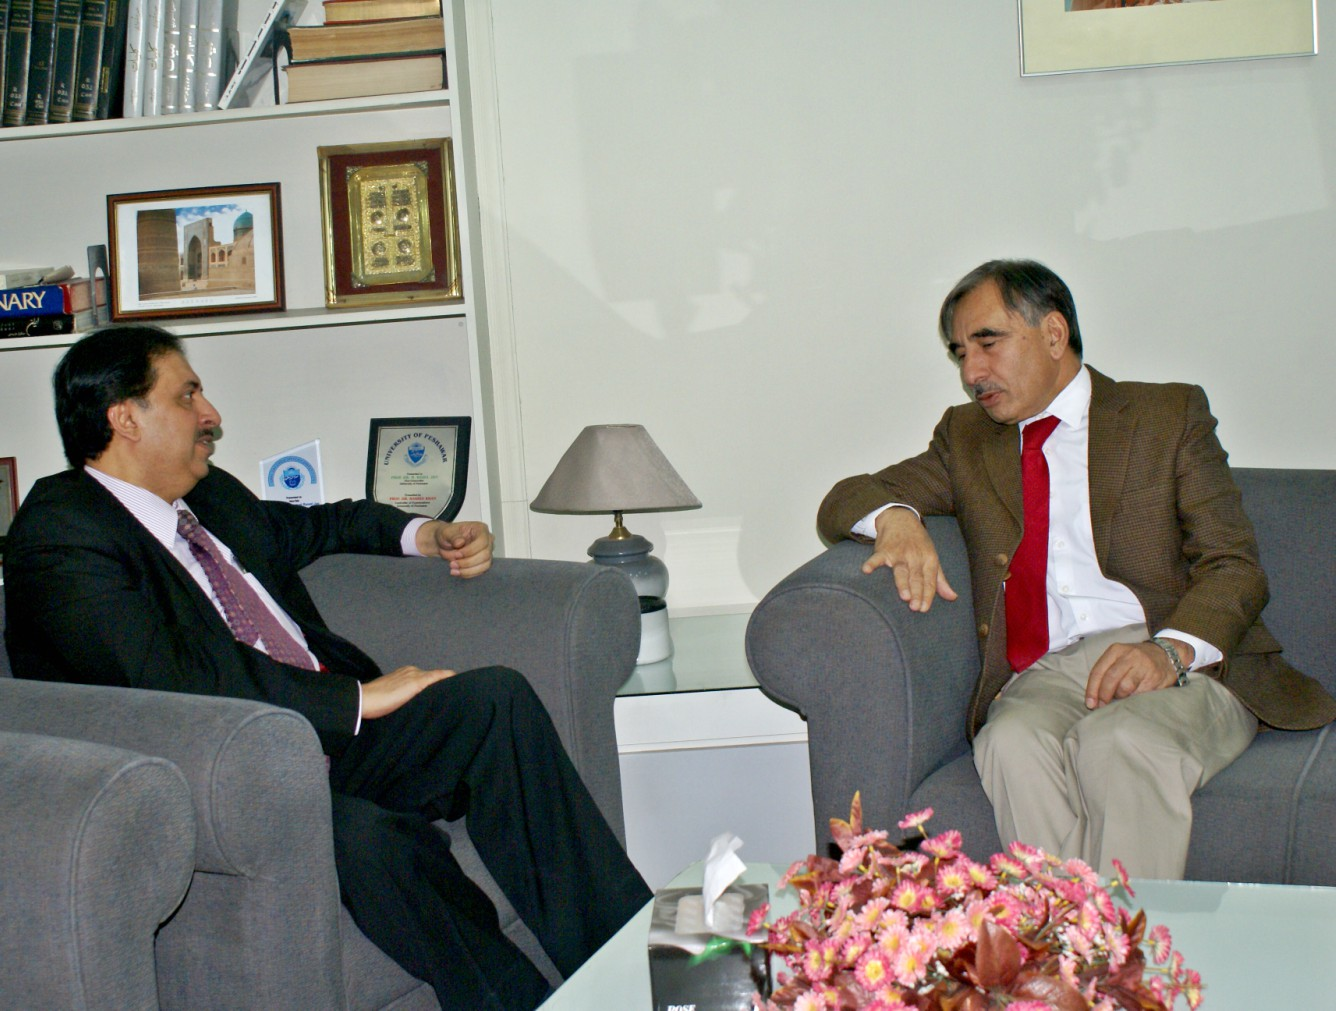 Vice Chancellor UoP Prof. Dr. Muhammad Rasul Jan in discussion with Secretary HED Zafar Ali Shah during his visit to the University of Peshawar